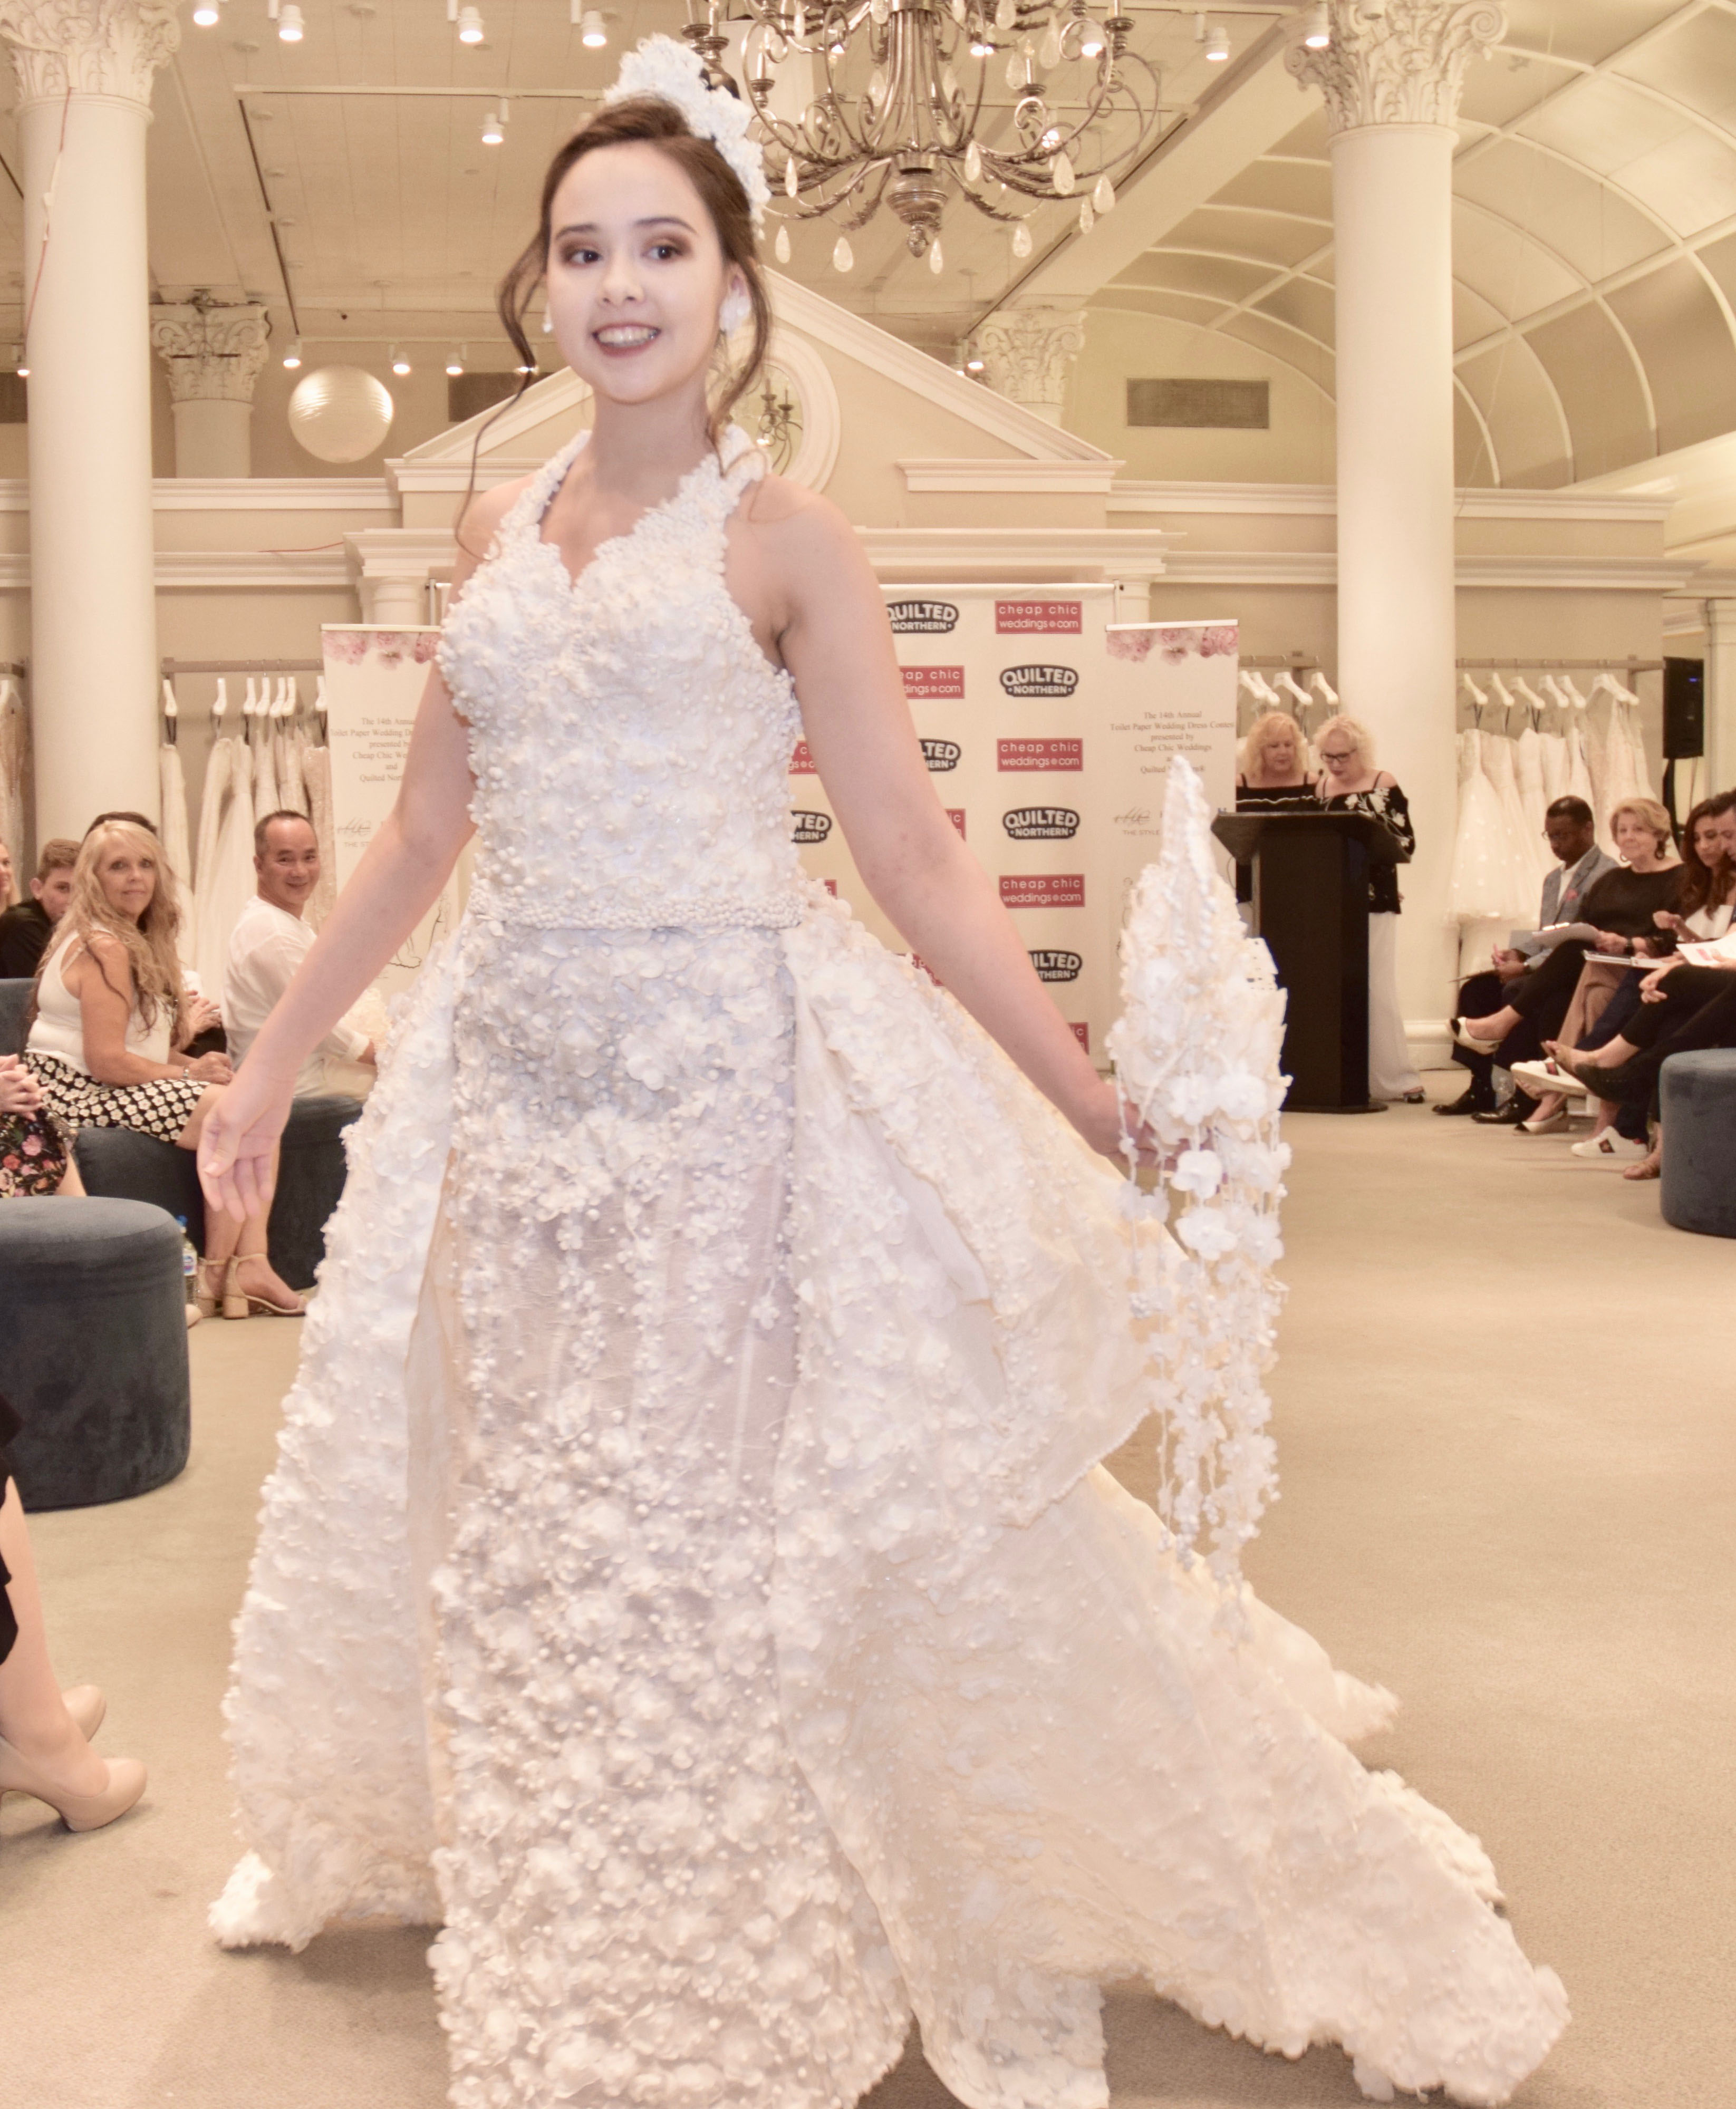 Dress Gowns For Weddings: The 2018 Toilet Paper Wedding Dress Contest